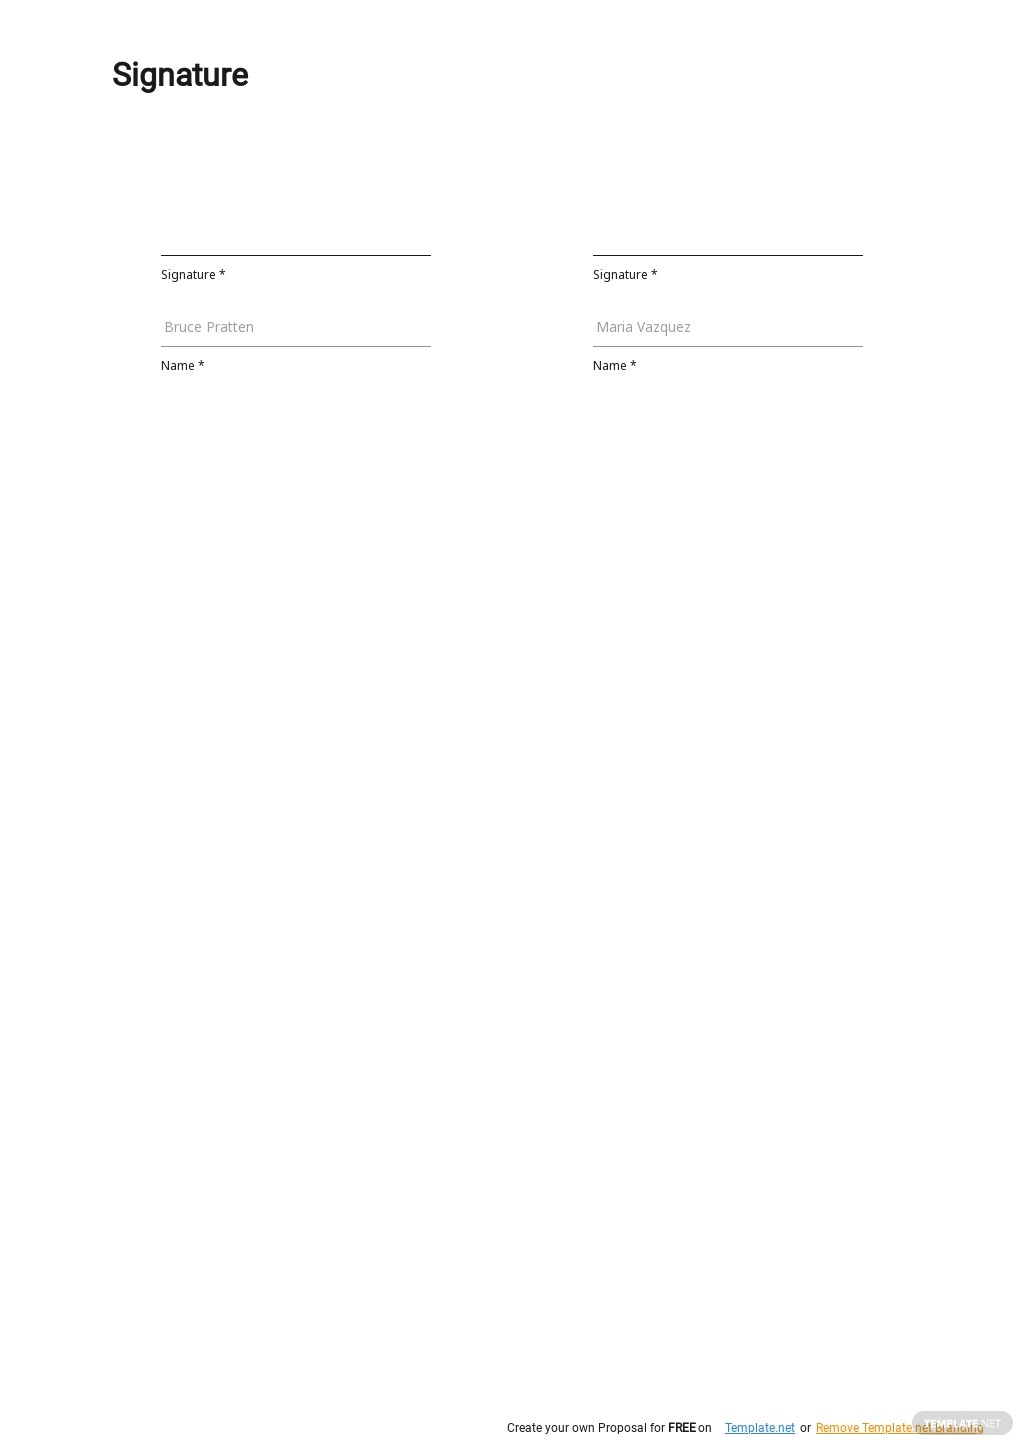 Asset Purchase Agreement For a Real Estate Property Template 2.jpe